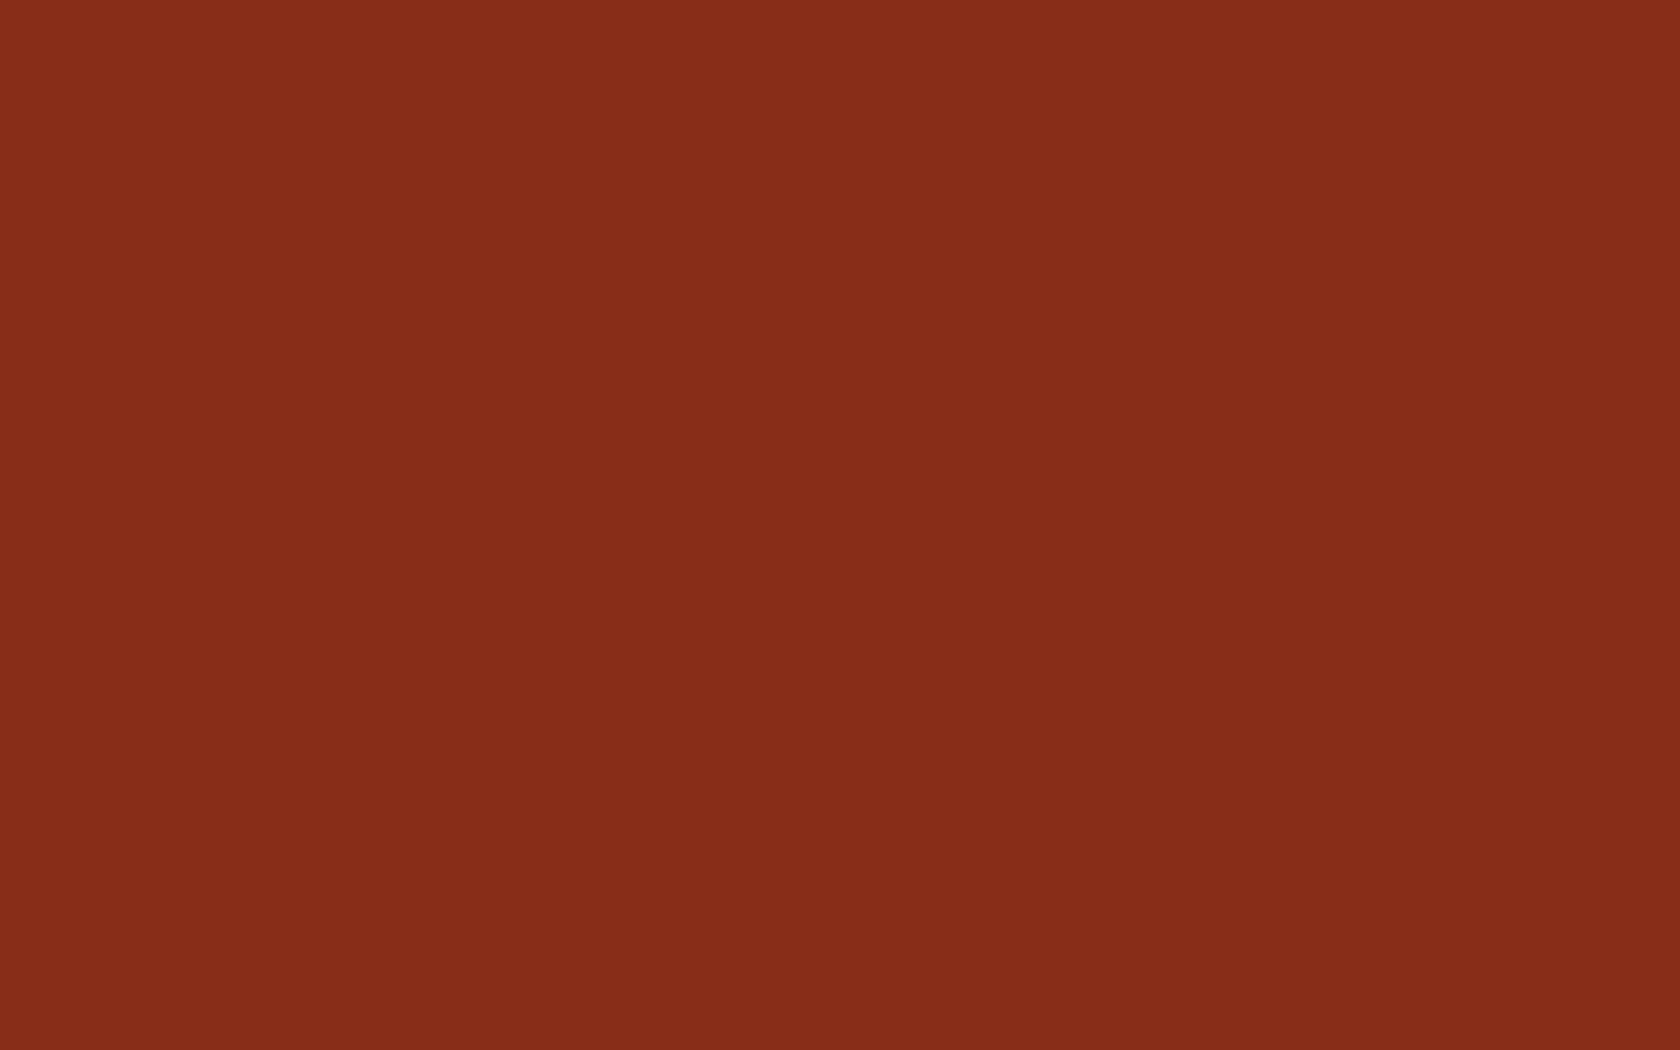 1680x1050 Sienna Solid Color Background